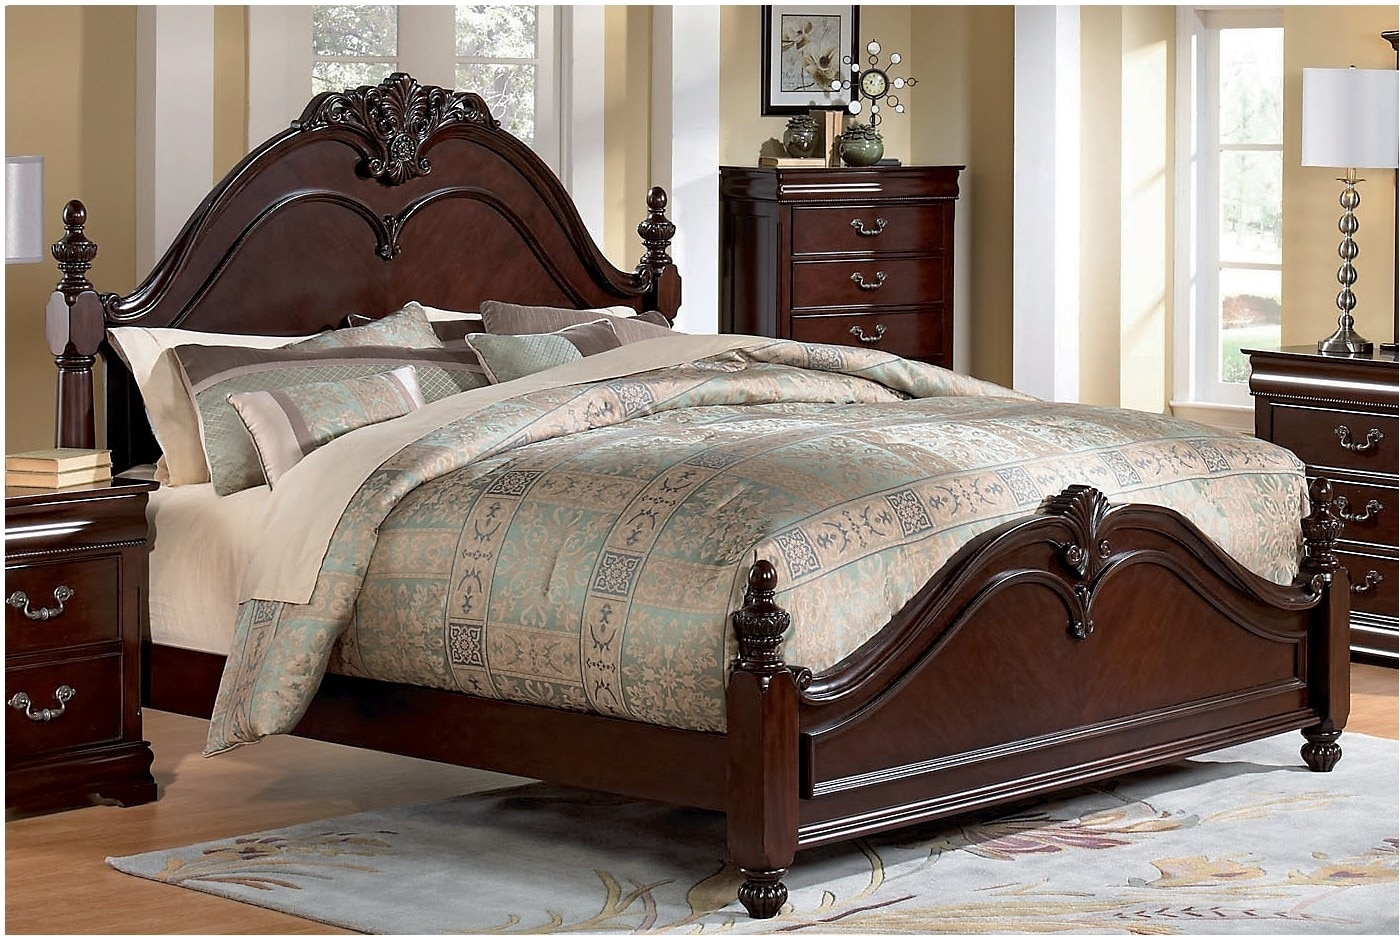 Westchester Queen Bed The Brick